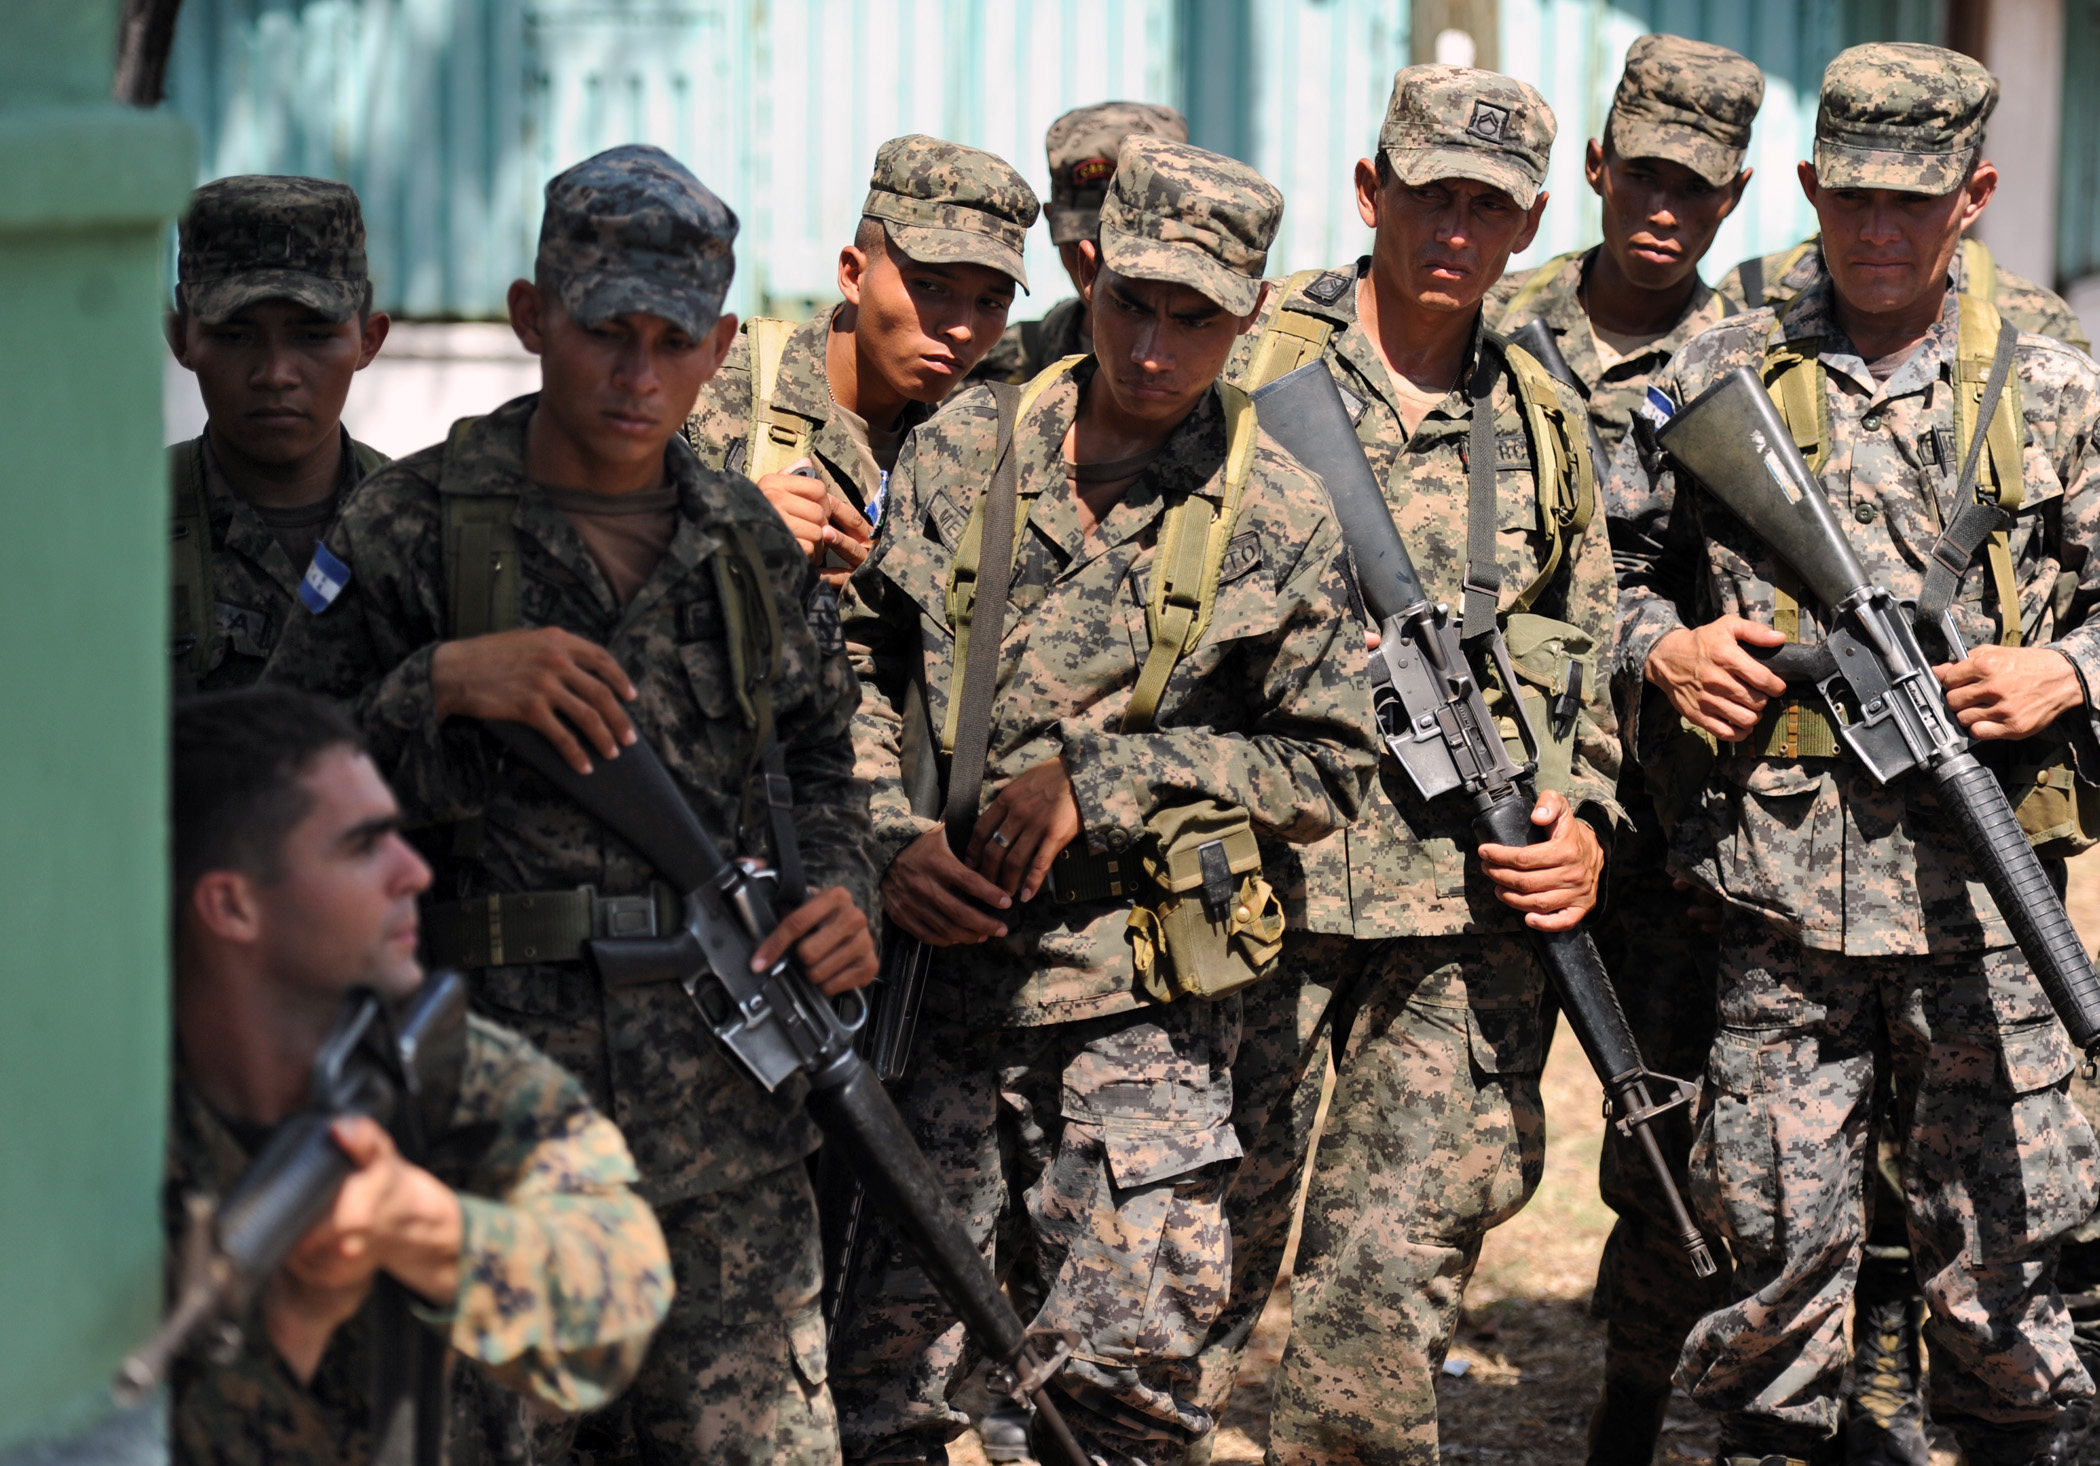 Honduran soldiers train with US Marines. US Navy photo by Mass Communication Specialist 2nd Class Ricardo J. Reyes.